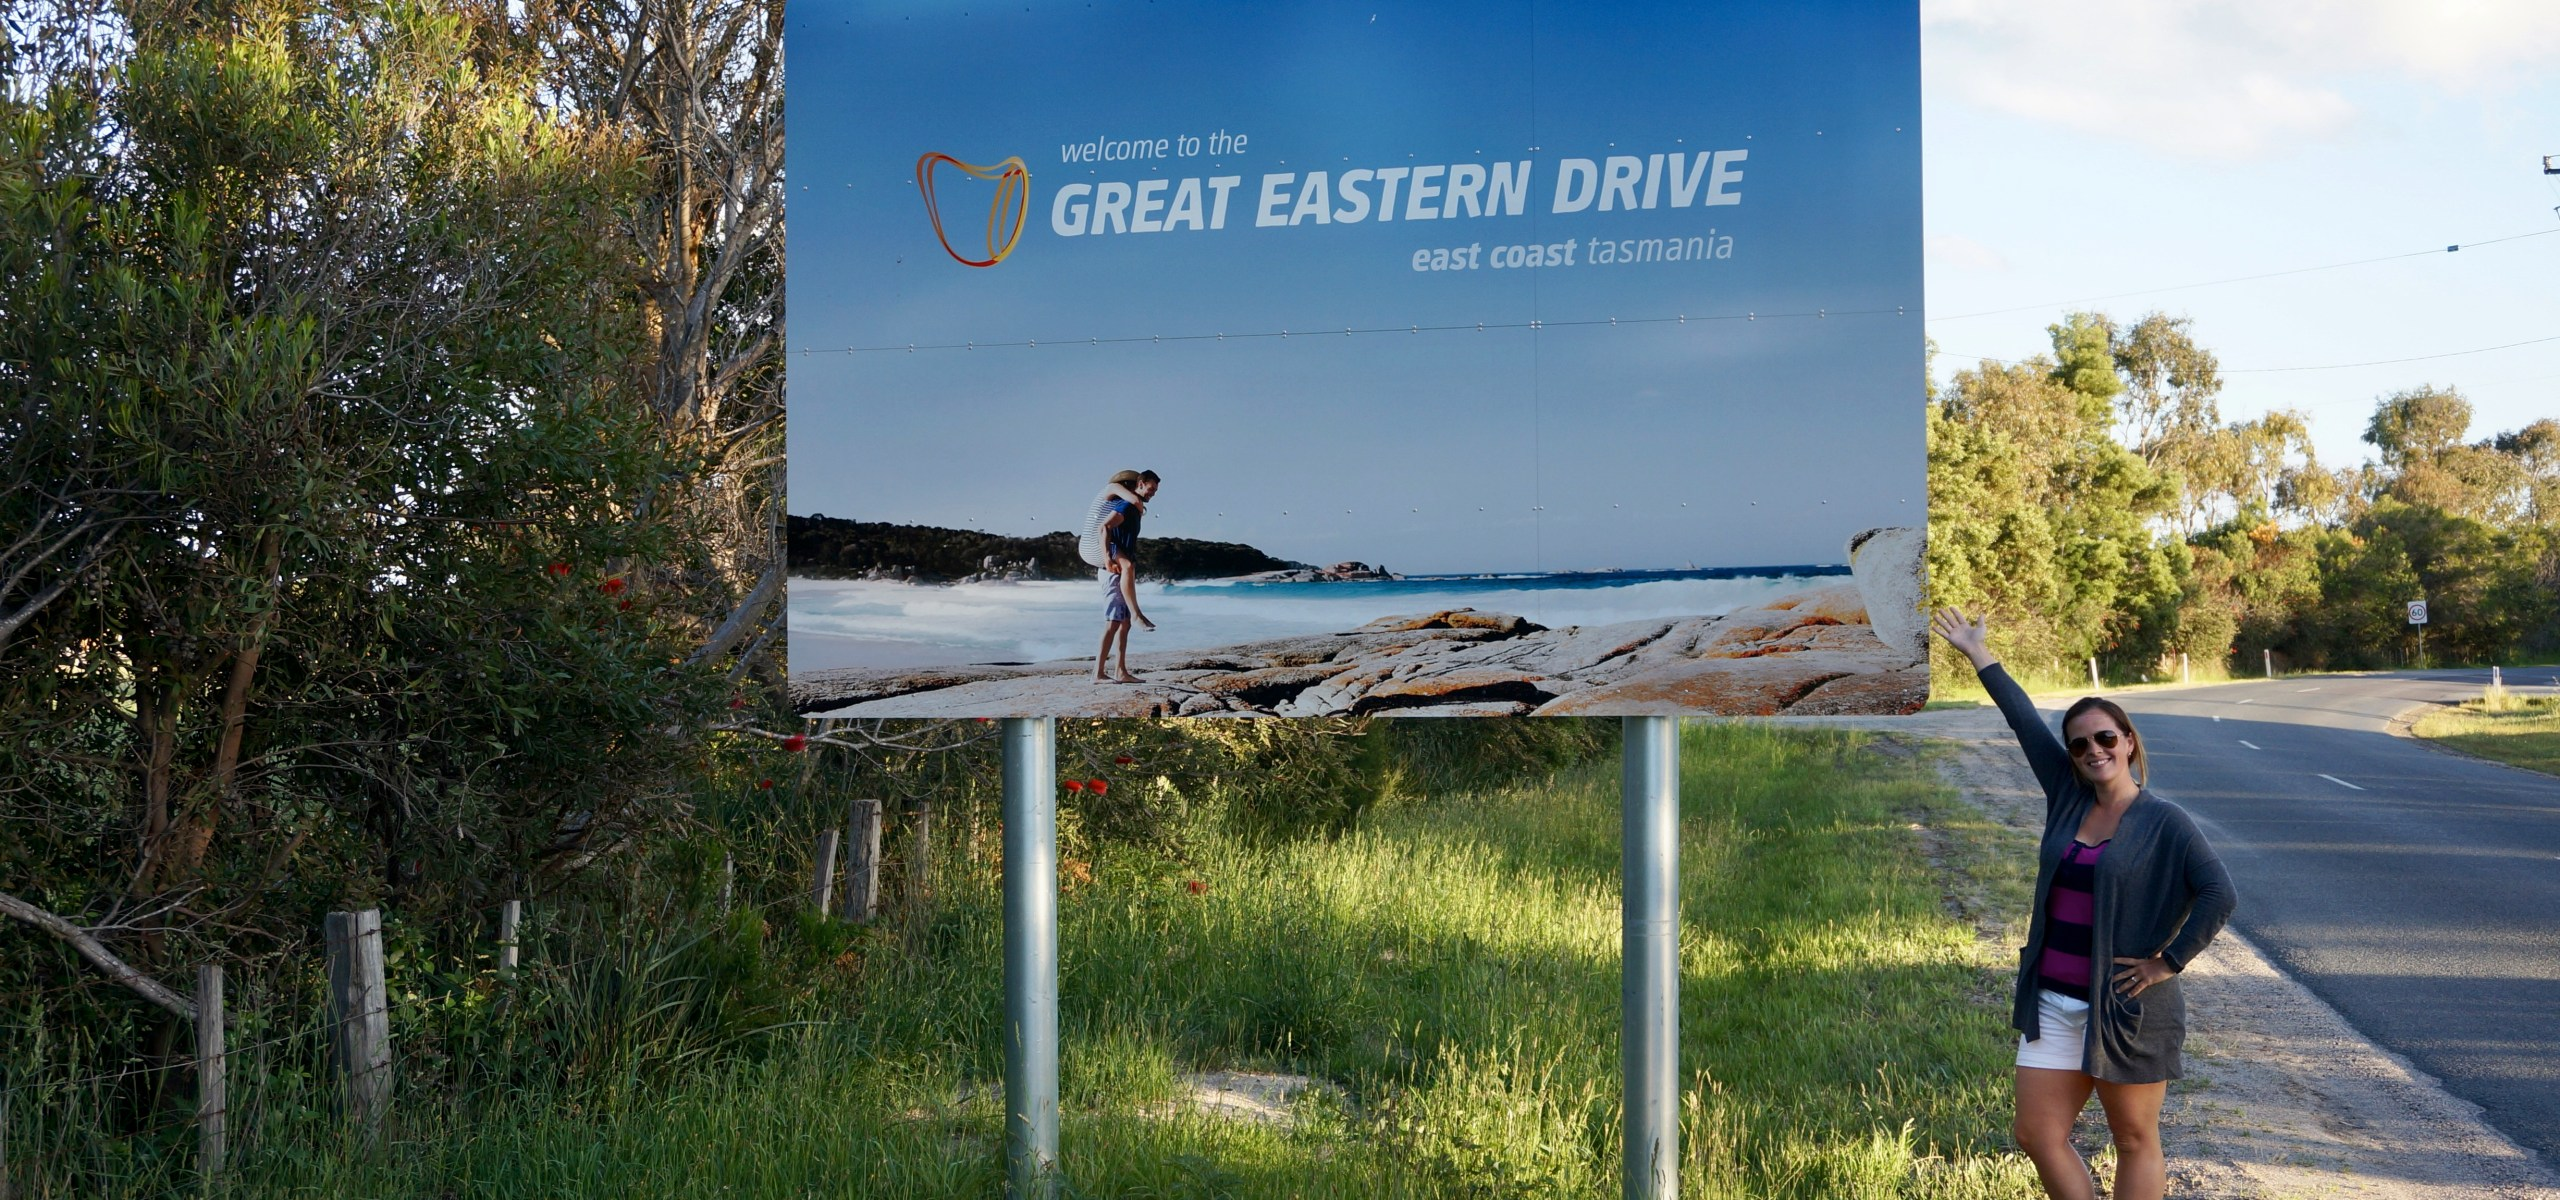 The Great Eastern Drive